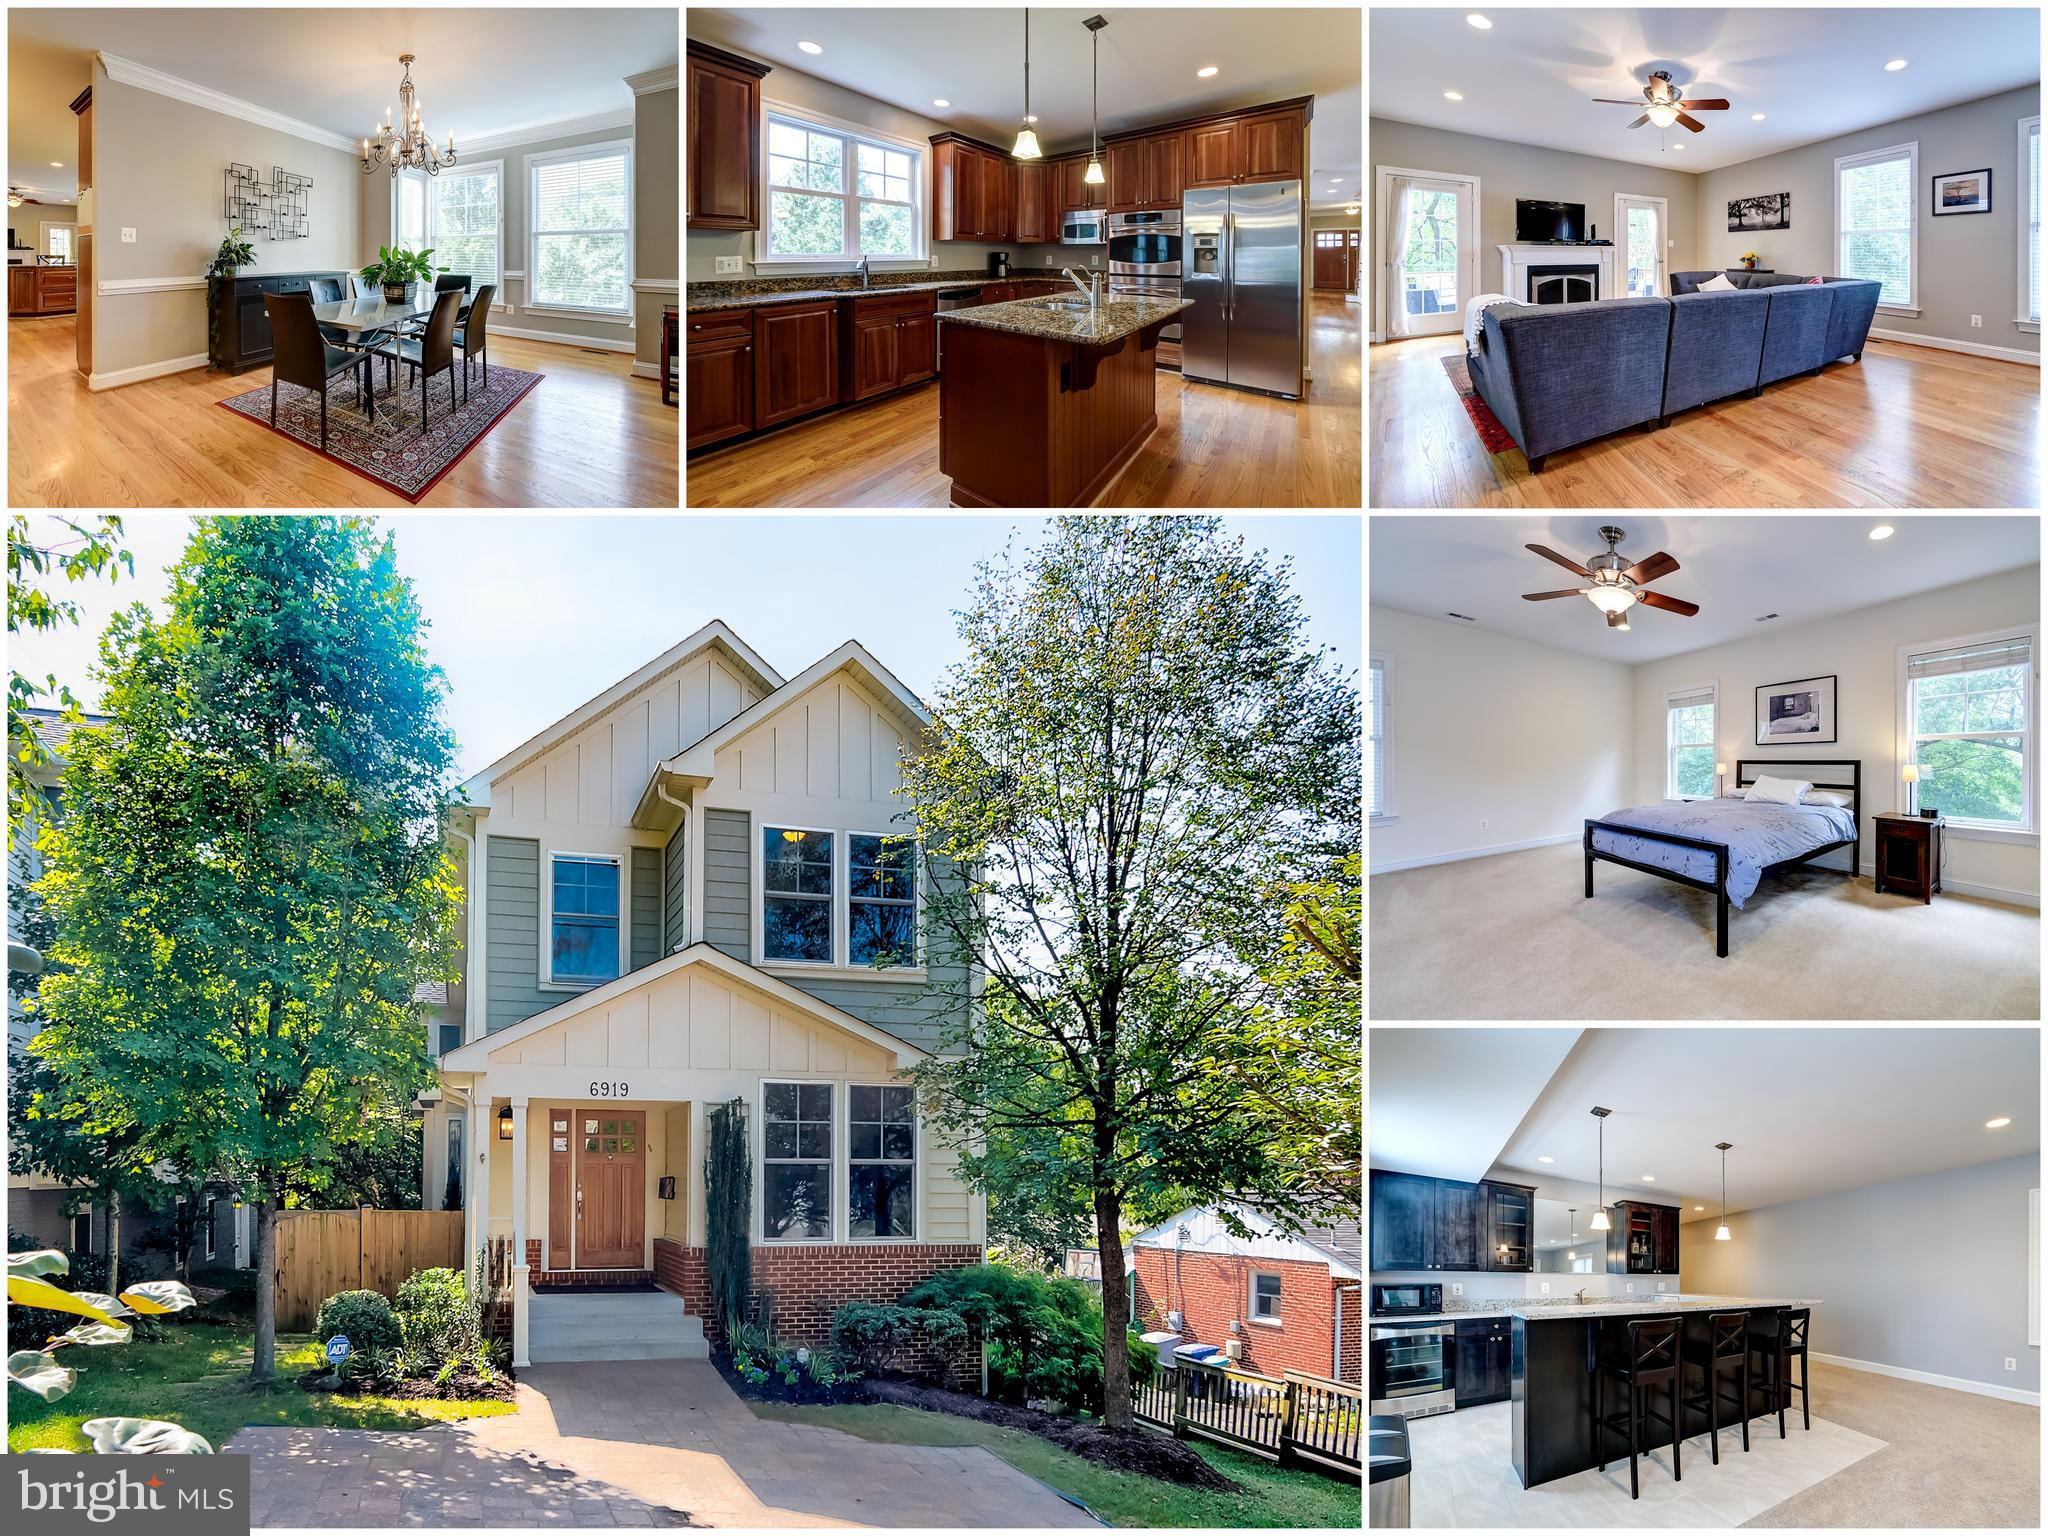 This large 5 bedroom Craftsman home with four full and two half baths boasts over 4,000 sq. ft. of living space. It is tucked away on a quiet street yet is just blocks from the West Falls Church Metro. Sitting on the peaceful, shaded deck you would never realize that you are a quick walk from major public transport and the parks, restaurants and shopping of the city of Falls Church. Open floor plan, beautiful hard wood floors and crown molding on main level, which includes living and dining rooms and stunning eat-in kitchen featuring custom KraftMaid cabinetry, granite countertops, stainless steel appliances, large island and a breakfast bar. Kitchen leads right into the spacious family room with a gas-burning fireplace. Separate light-filled office on main level. Upstairs you will find expansive master bedroom featuring a huge walk-in closet with organizers by Econize. There is a large master bathroom with separate shower and soaking tub. Second bedroom upstairs with en suite bath is perfect for guests, and the additional 2 large bedrooms share a jack and jill bathroom. Laundry conveniently located on the upper level. The lower level impresses with spacious rec room and beautifully appointed wet bar (plus wine fridge); great for entertaining. Additional large 5th bedroom with private bath downstairs -- perfect for au/pair or in-law suite. Big storage/utility room. Location = fantastic; easy walk to High Point Pool, W&OD bike trail and Falls Church amenities. Top rated McLean HS Pyramid. It is a wonderful home in a fantastic location!